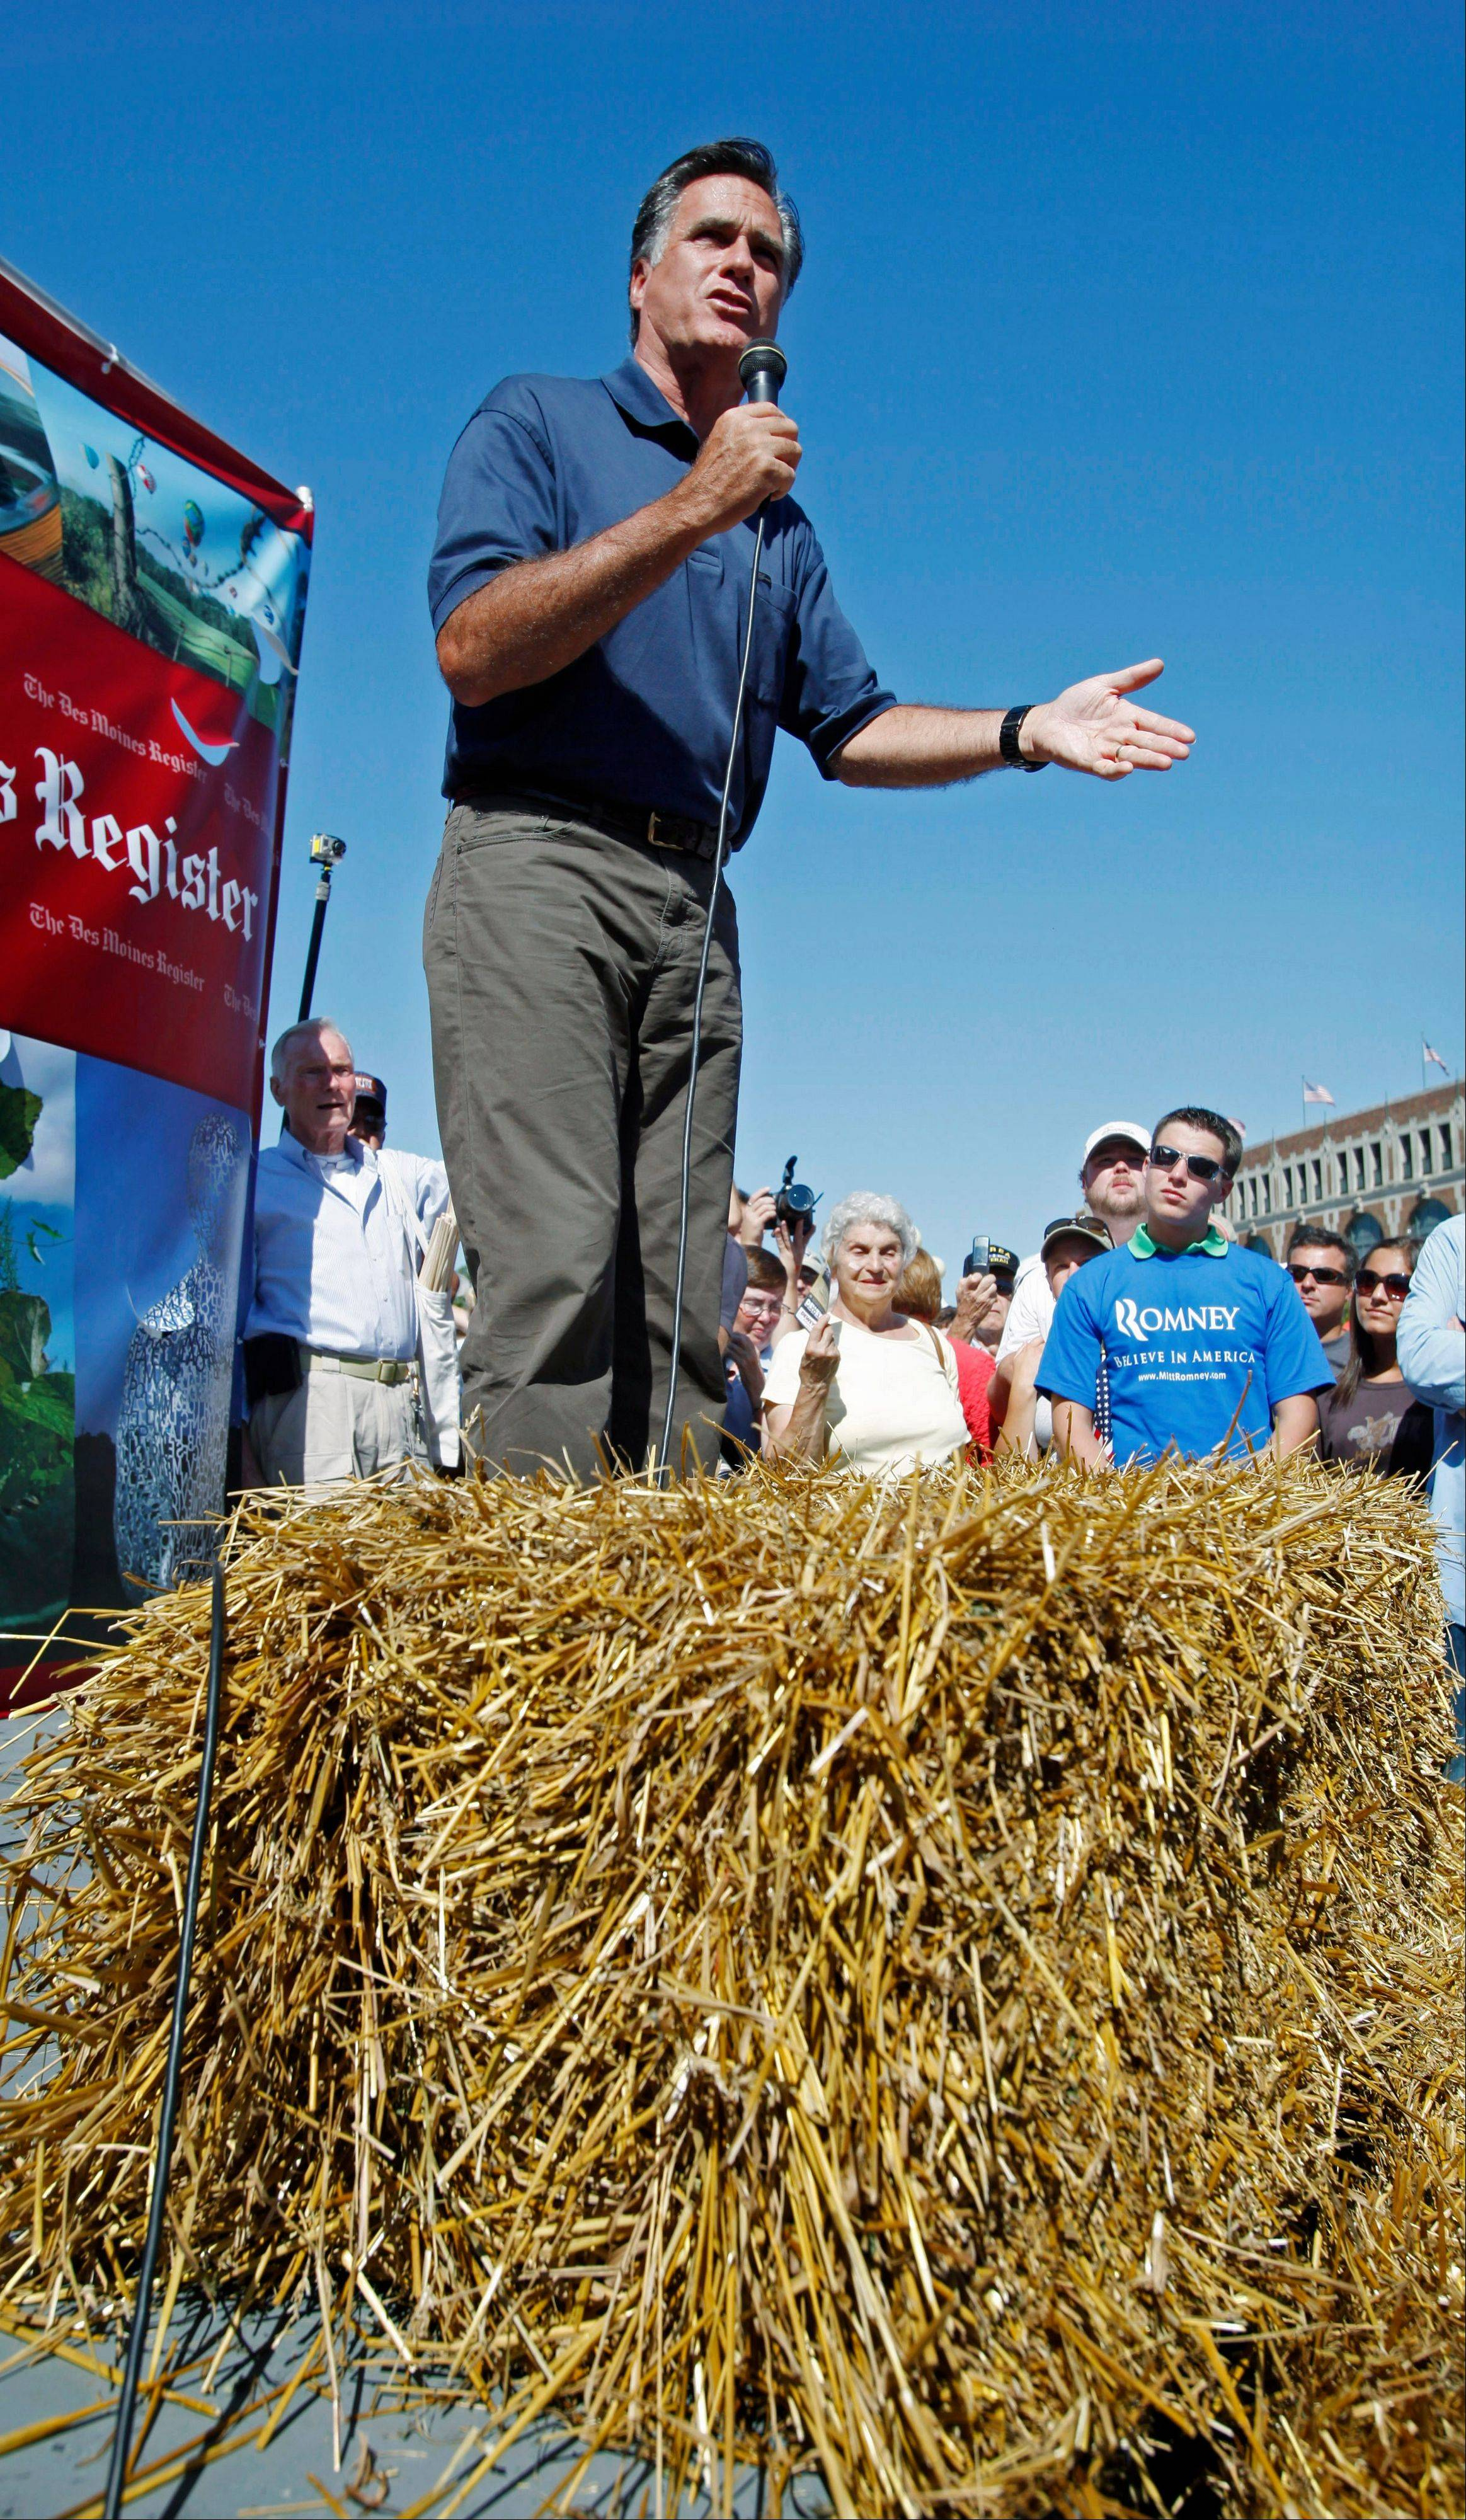 Former Mass. Gov. Mitt Romney speaks to fair goers during a campaign stop at the Iowa State Fair in Des Moines on Thursday.